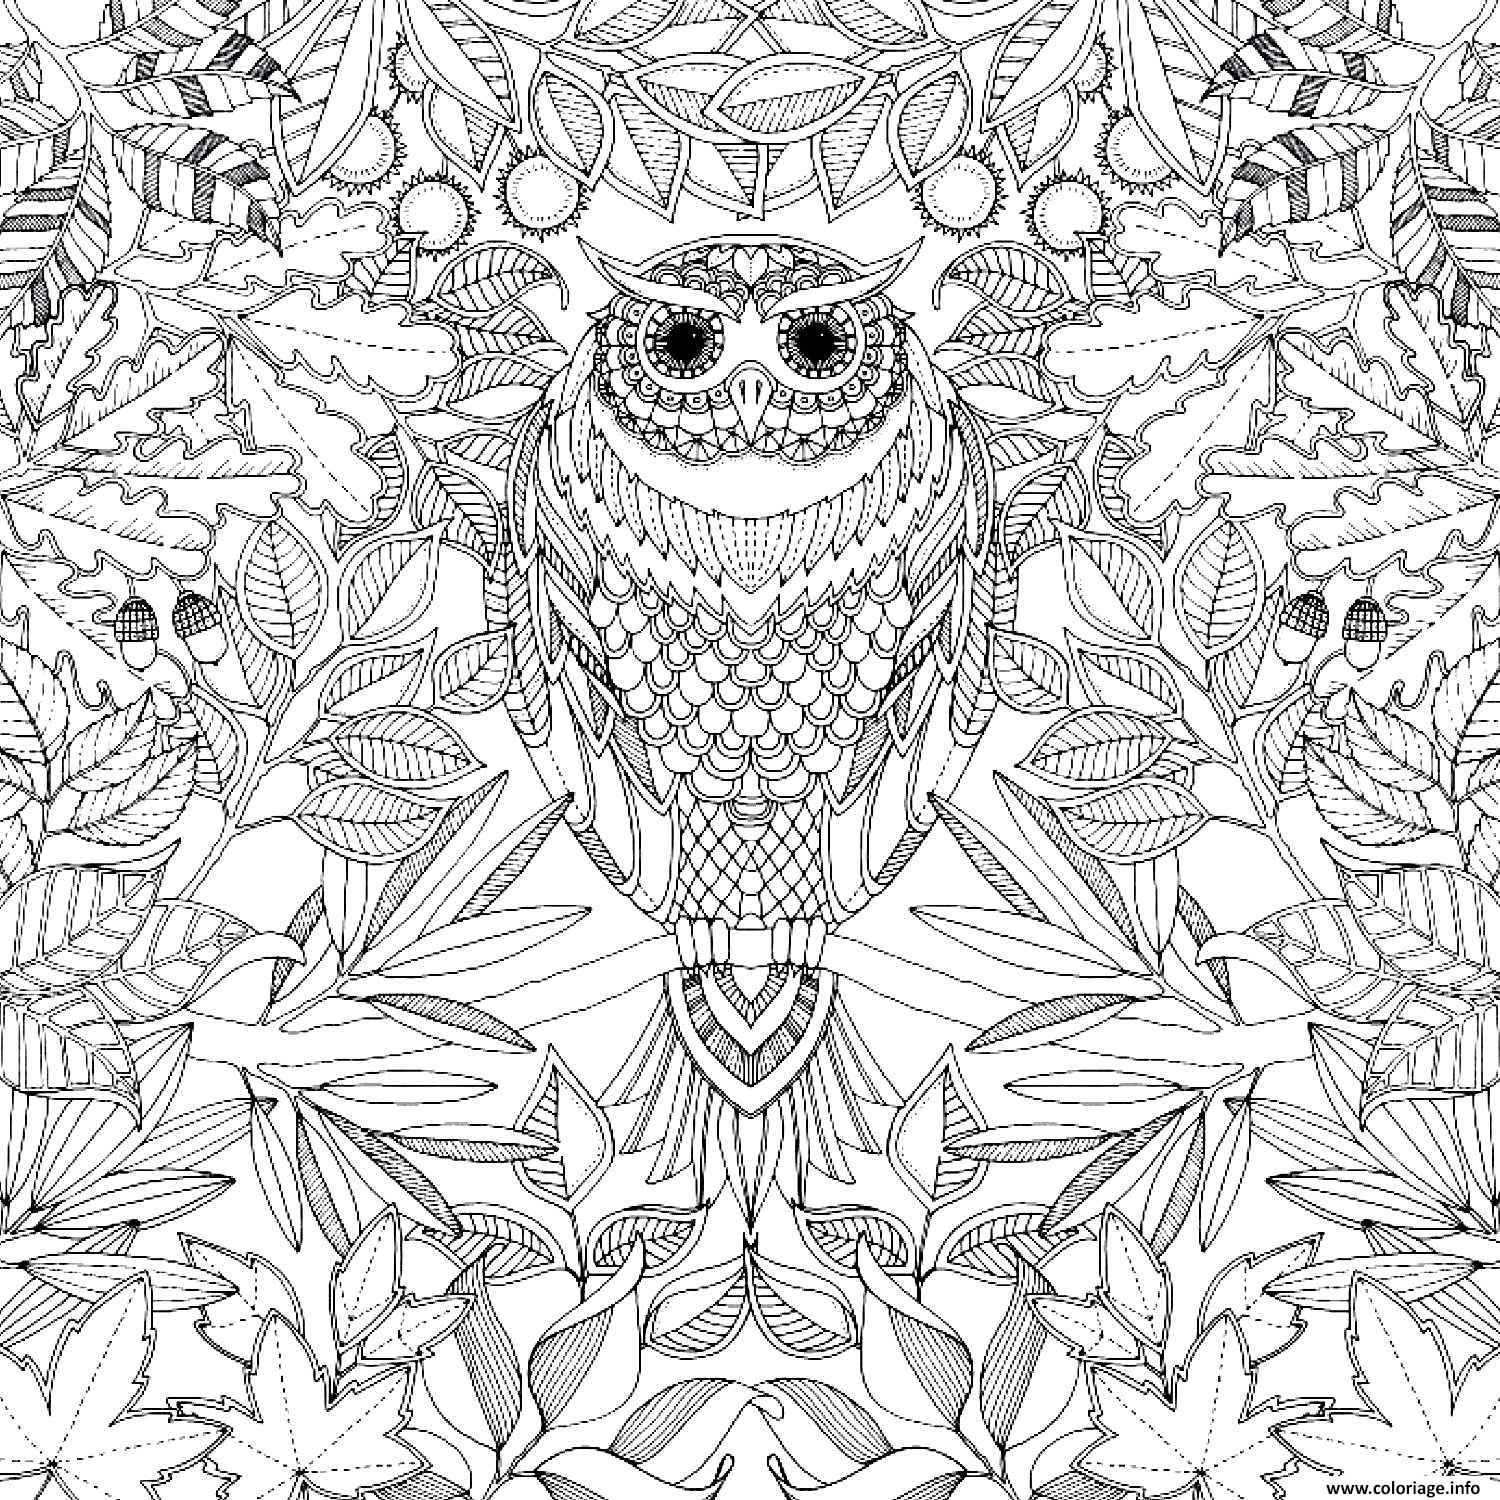 Coloriage art therapie 45 dessin - Coloriage therapie ...